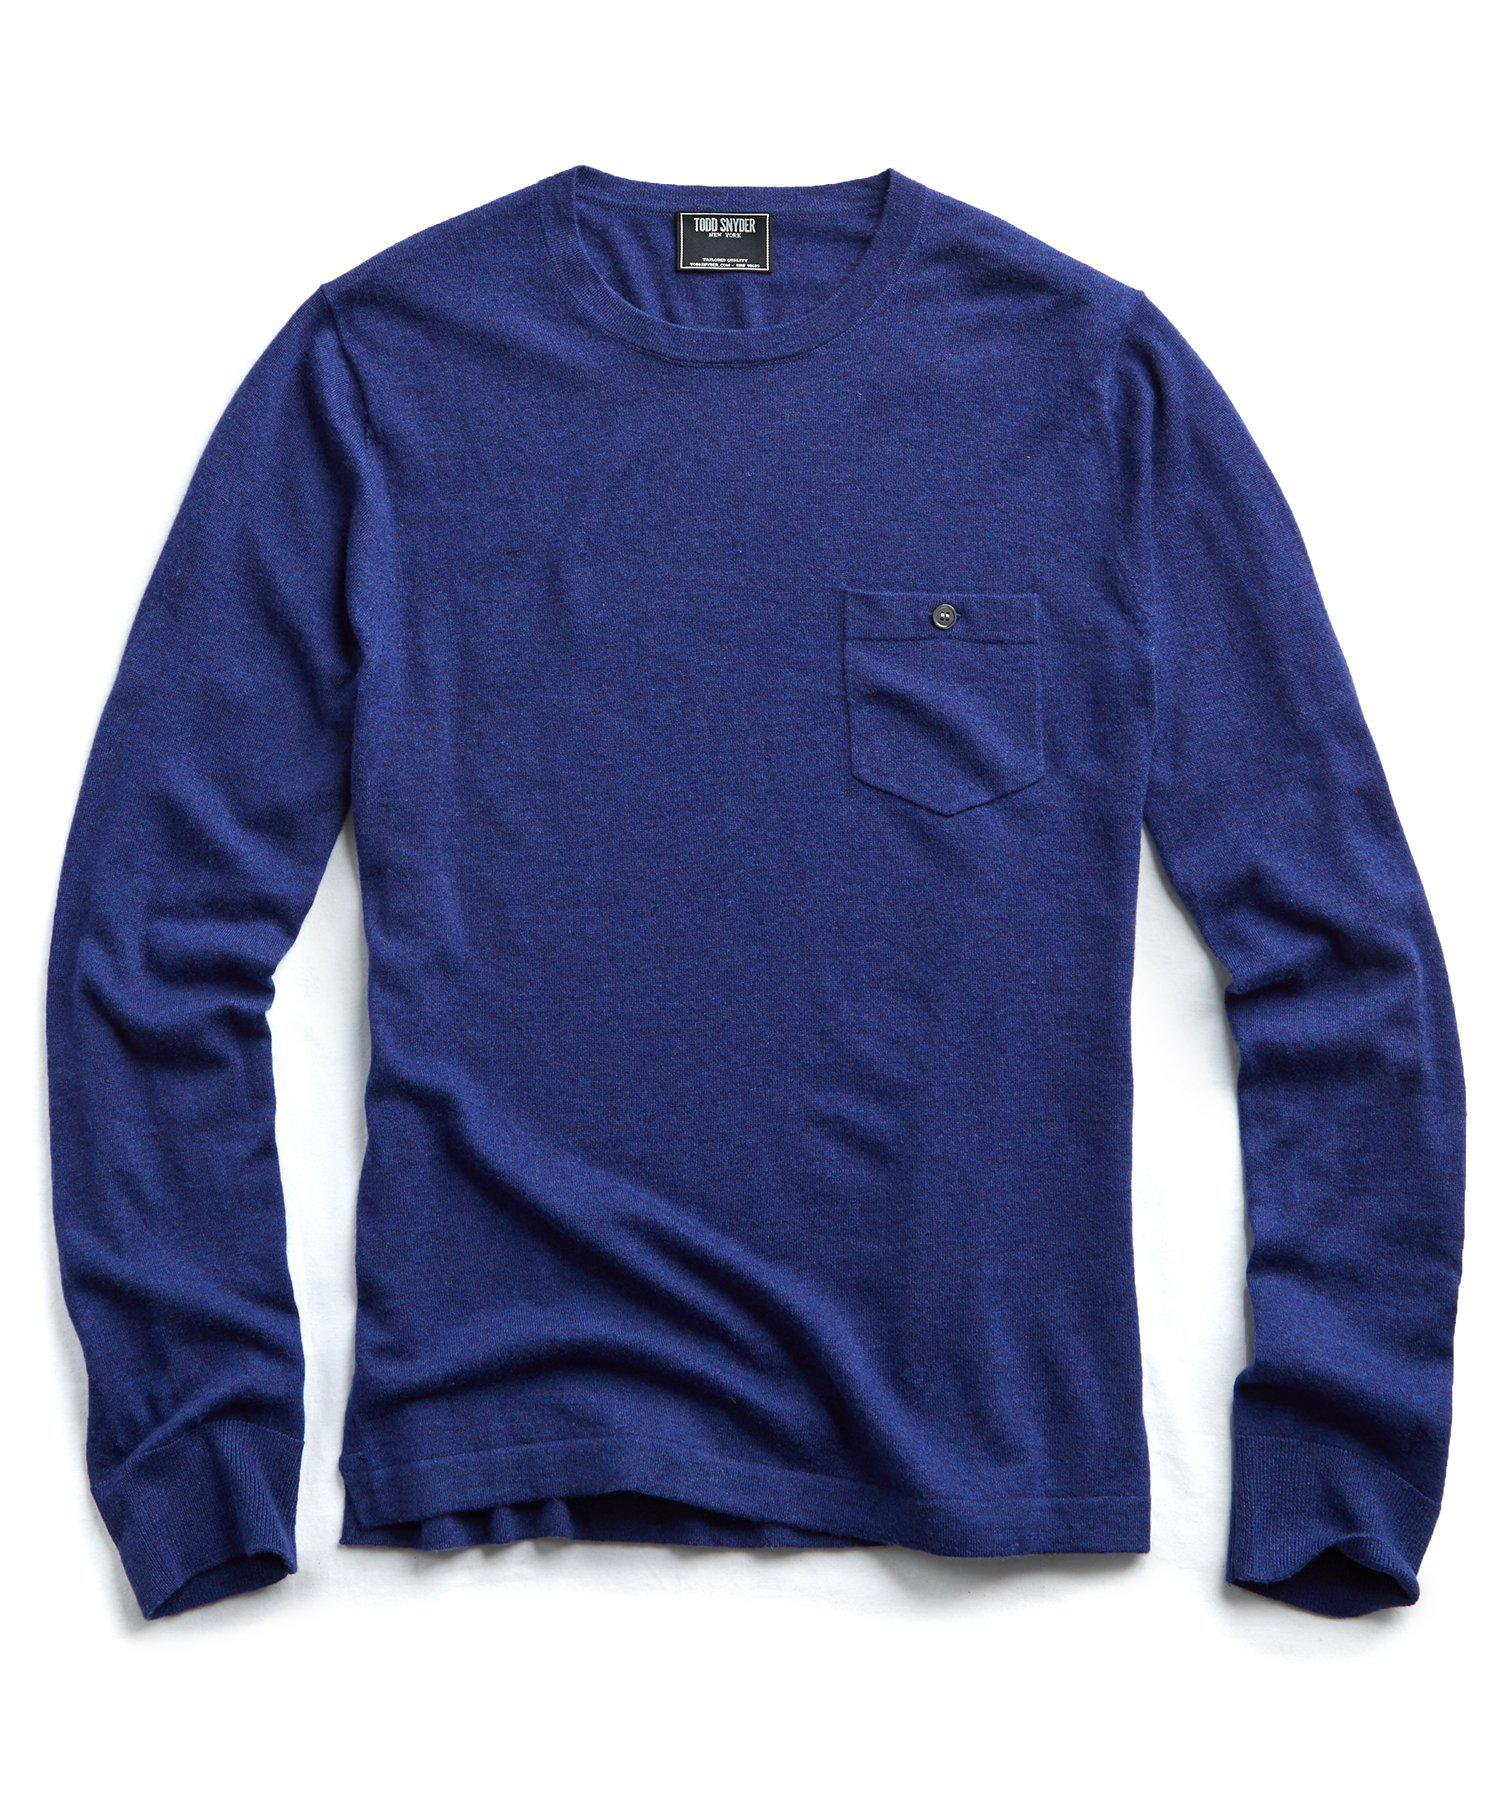 cbc2035a5a0bff Todd Snyder - Cashmere T-shirt Sweater In Blue Heather for Men - Lyst. View  fullscreen